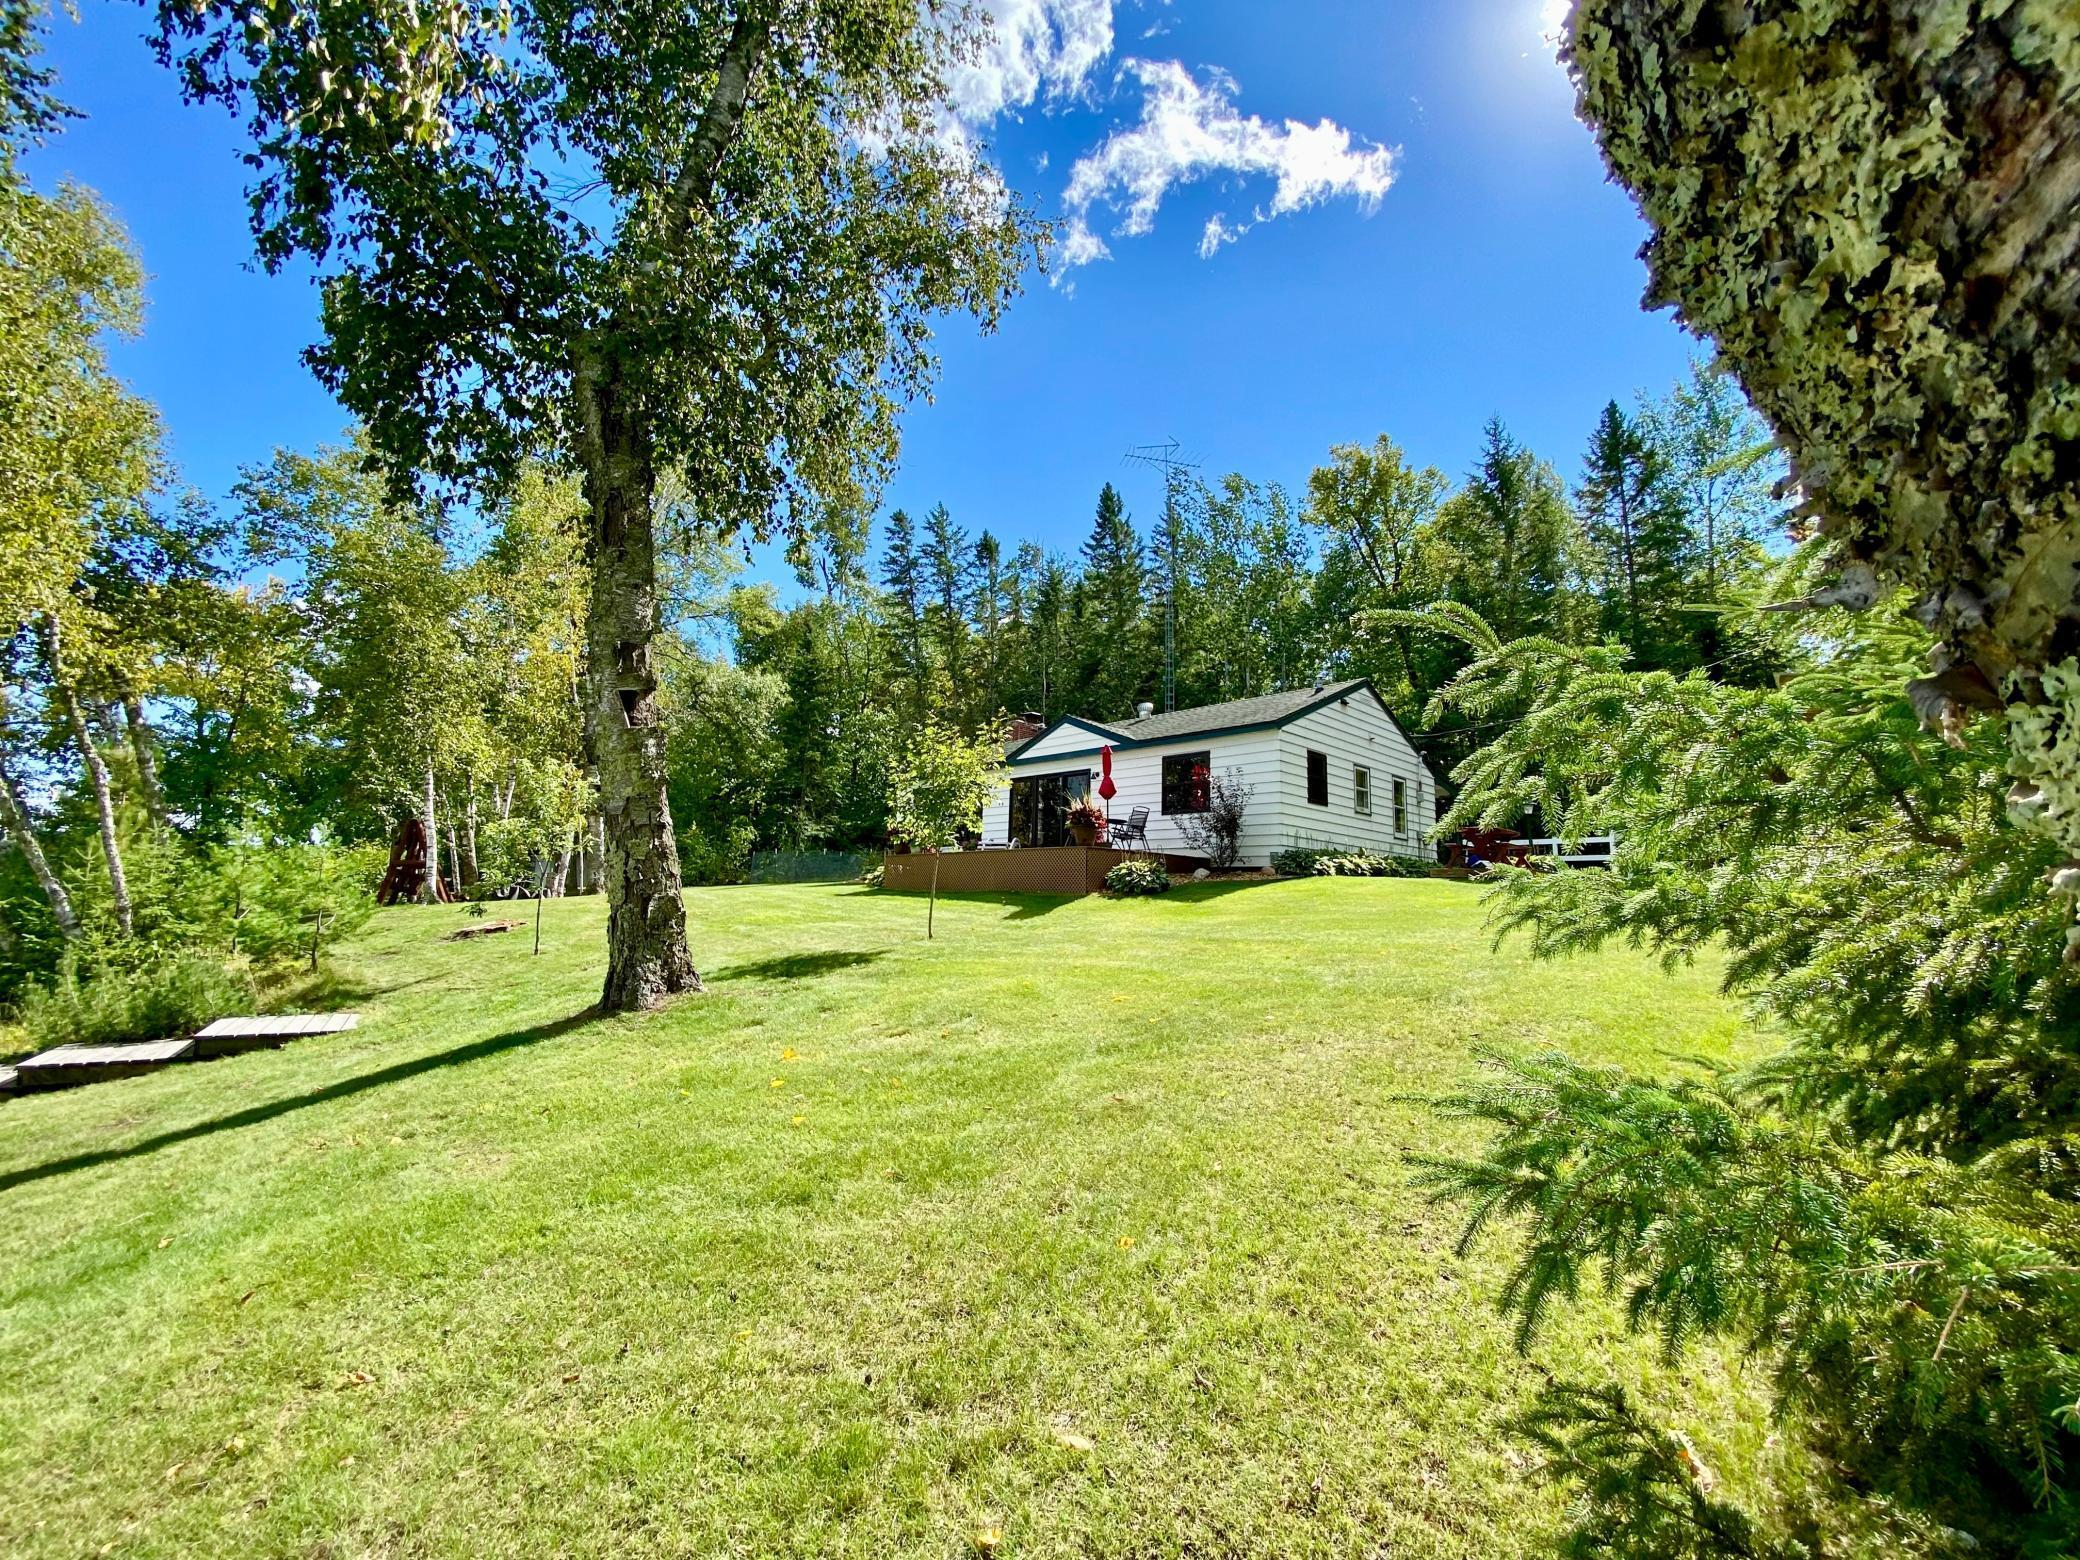 Nestled on 2.56 wooded acres and 205 ft of sand shoreline, in the heart of the Chippewa National Forest sits this charming 2+ bedroom, 2 bath well-maintained year round home. Sand Lake, a beautiful 3,392 acre lake, connects to Bowstring Lake (9,528 acres) for miles of fishing and recreational fun. If you love fishing, this home is also just 7 miles from a boat landing on Cut Foot Sioux and Lake Winnie (18,904 acres). The lakes in this area have some of the best walleye fishing in the State of Minnesota. Close by are ATV and snowmobile trails for year round fun. This 1,757 sq ft home located on a quiet, dead end road has steel siding, trek deck, hardwood floors, knotty pine walls, fireplace for cool evenings and expansive windows for beautiful panoramic views. The wooded lot is very private and features a gradual slope to the shoreline.